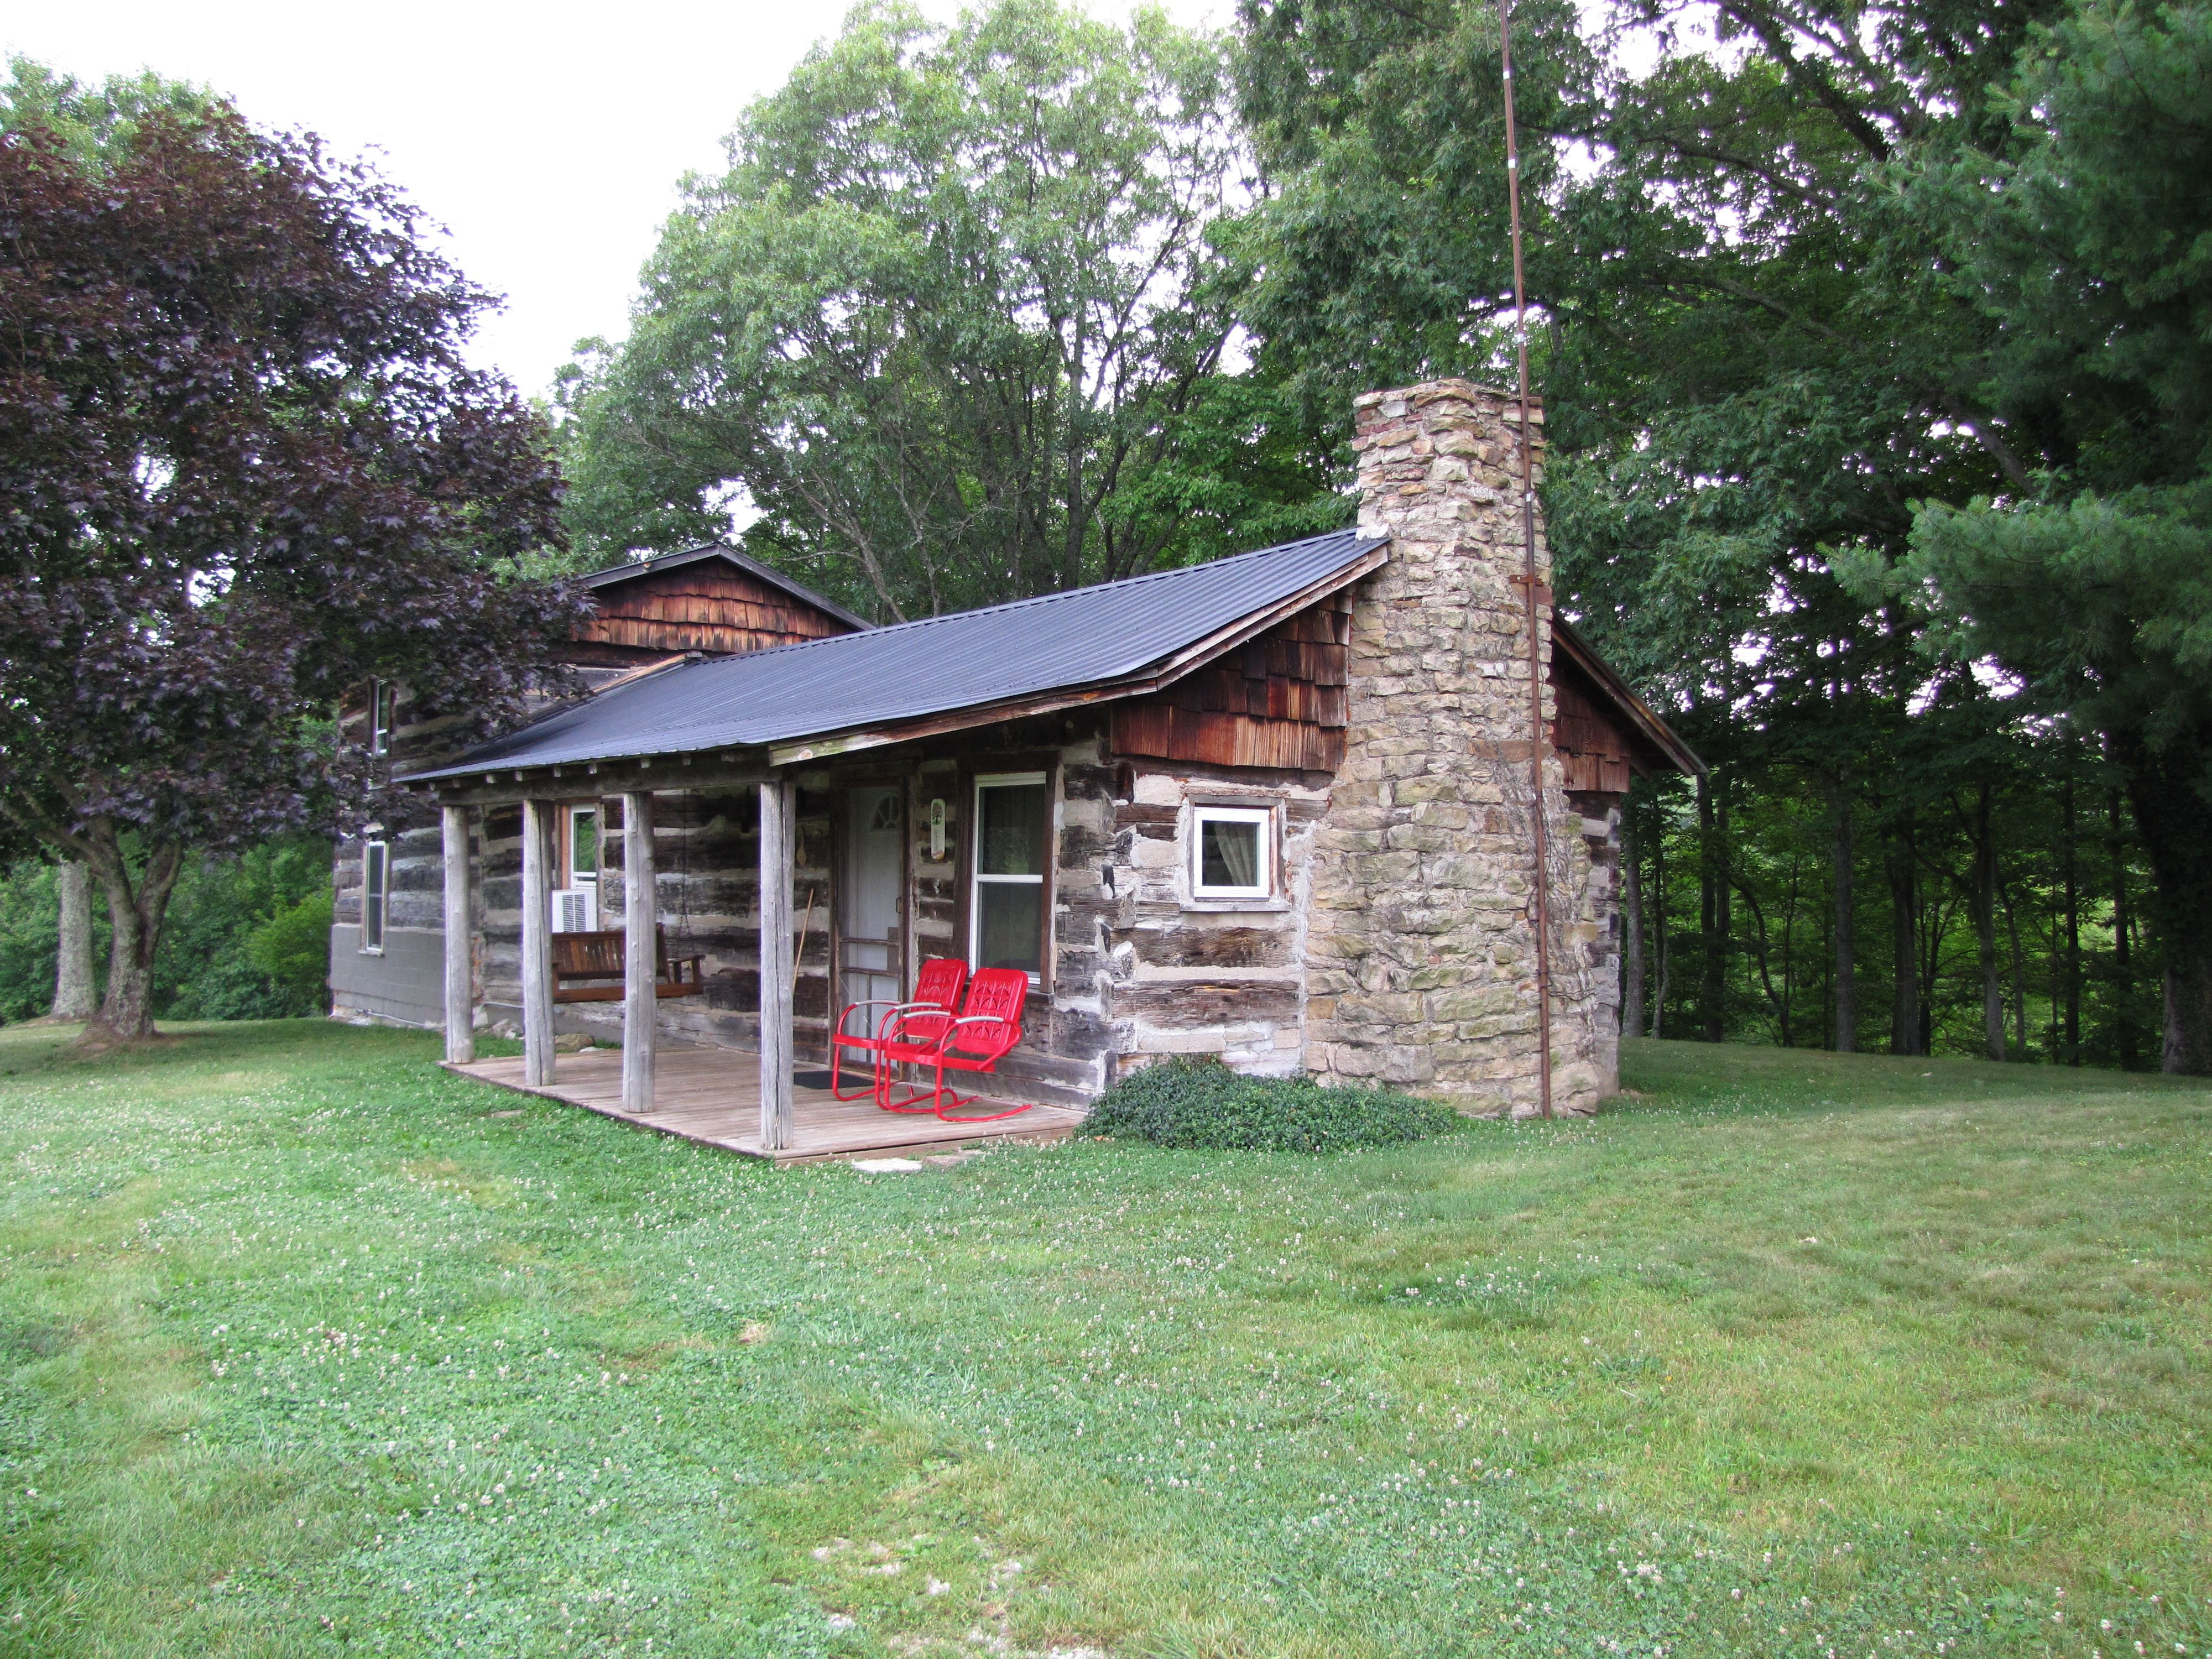 Red Bird Rentals 498 Dale Back Road, Frenchburg, KY 40322 Frenchburg, KY  Http